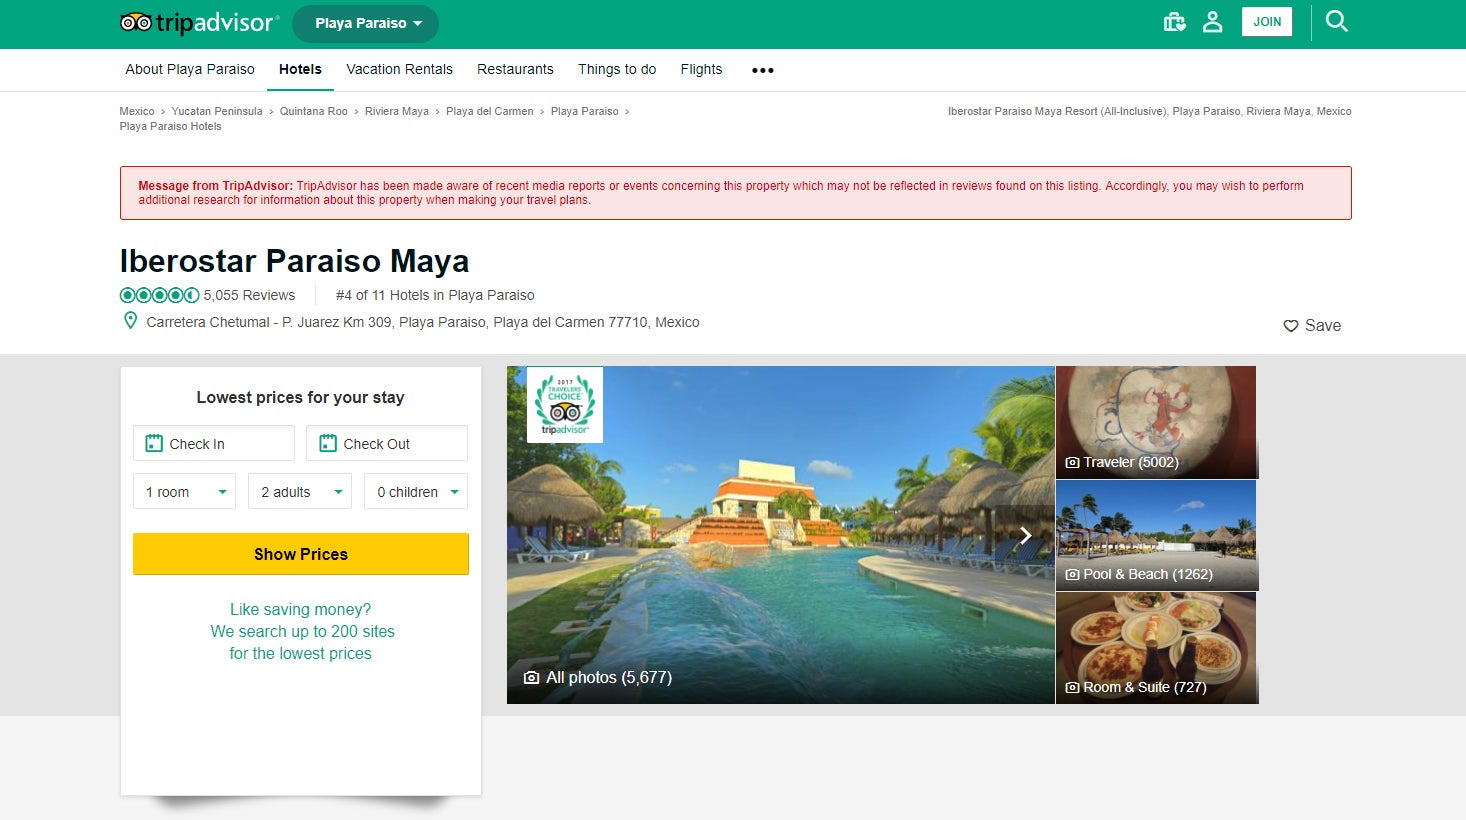 Tripadvisor Under Investigation After It Deleted Reviews Alleging Rape, Suspicious Deaths